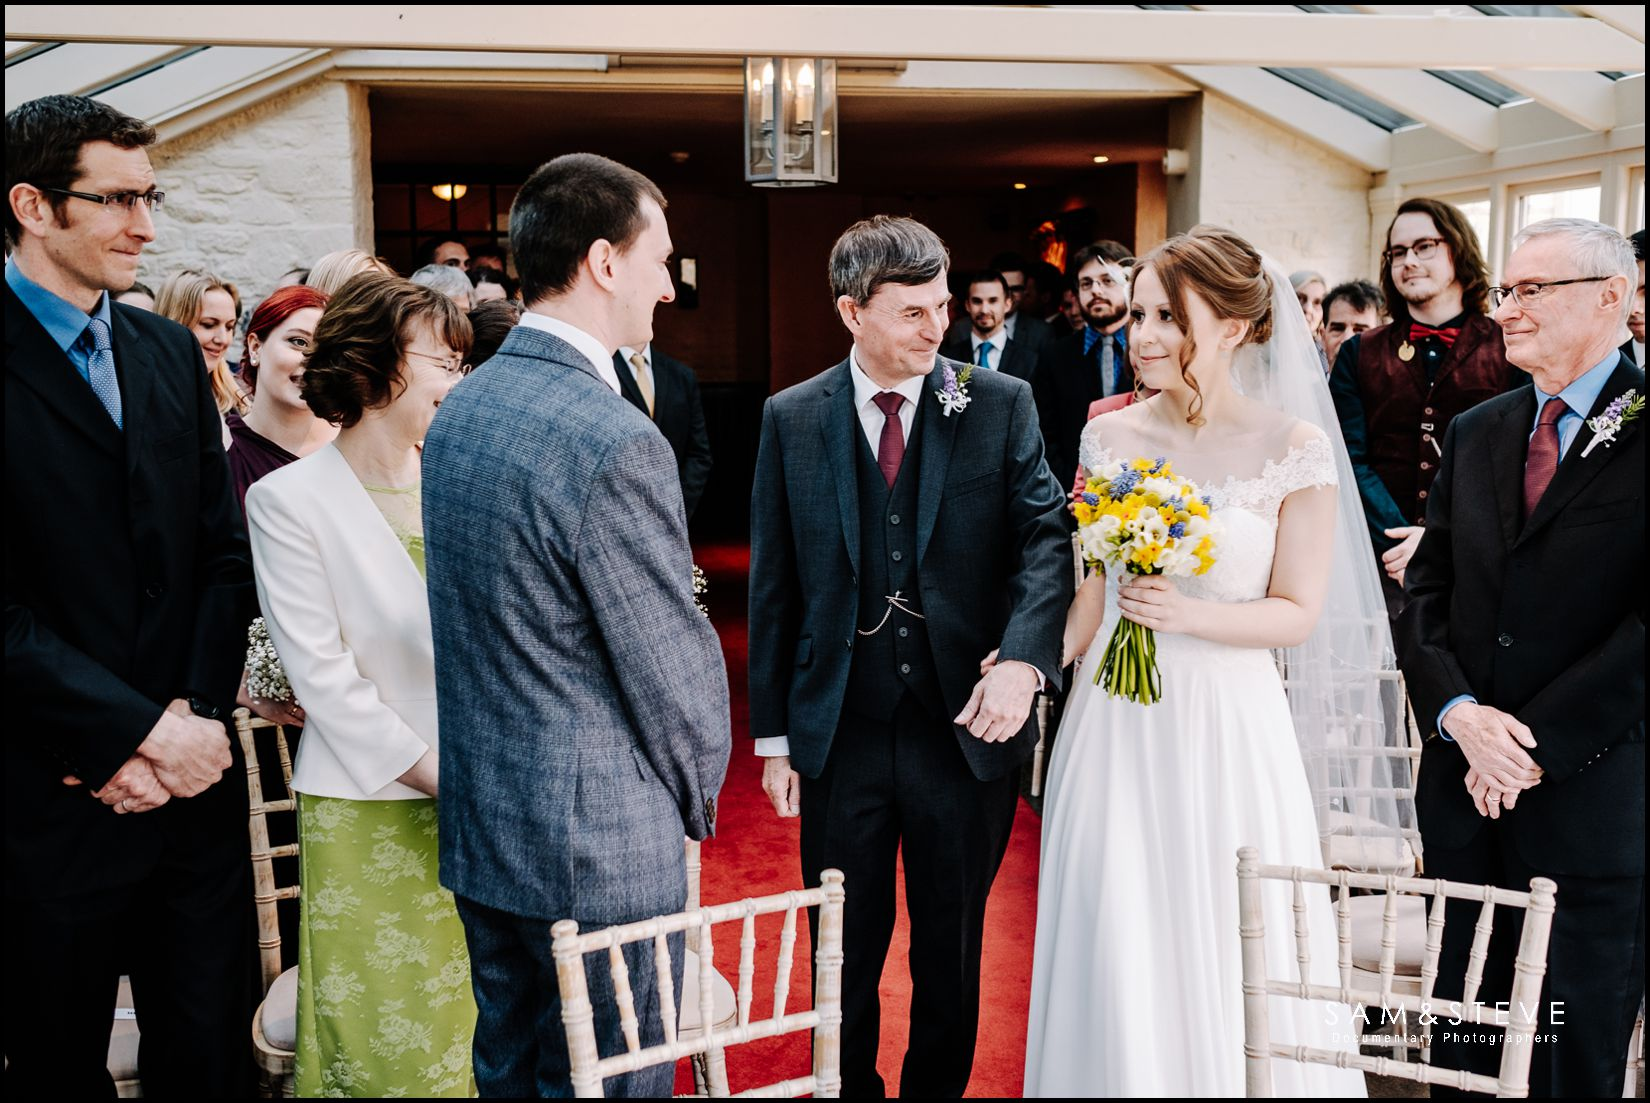 Bay Tree Burford wedding photography of a bride and her father approaching her groom